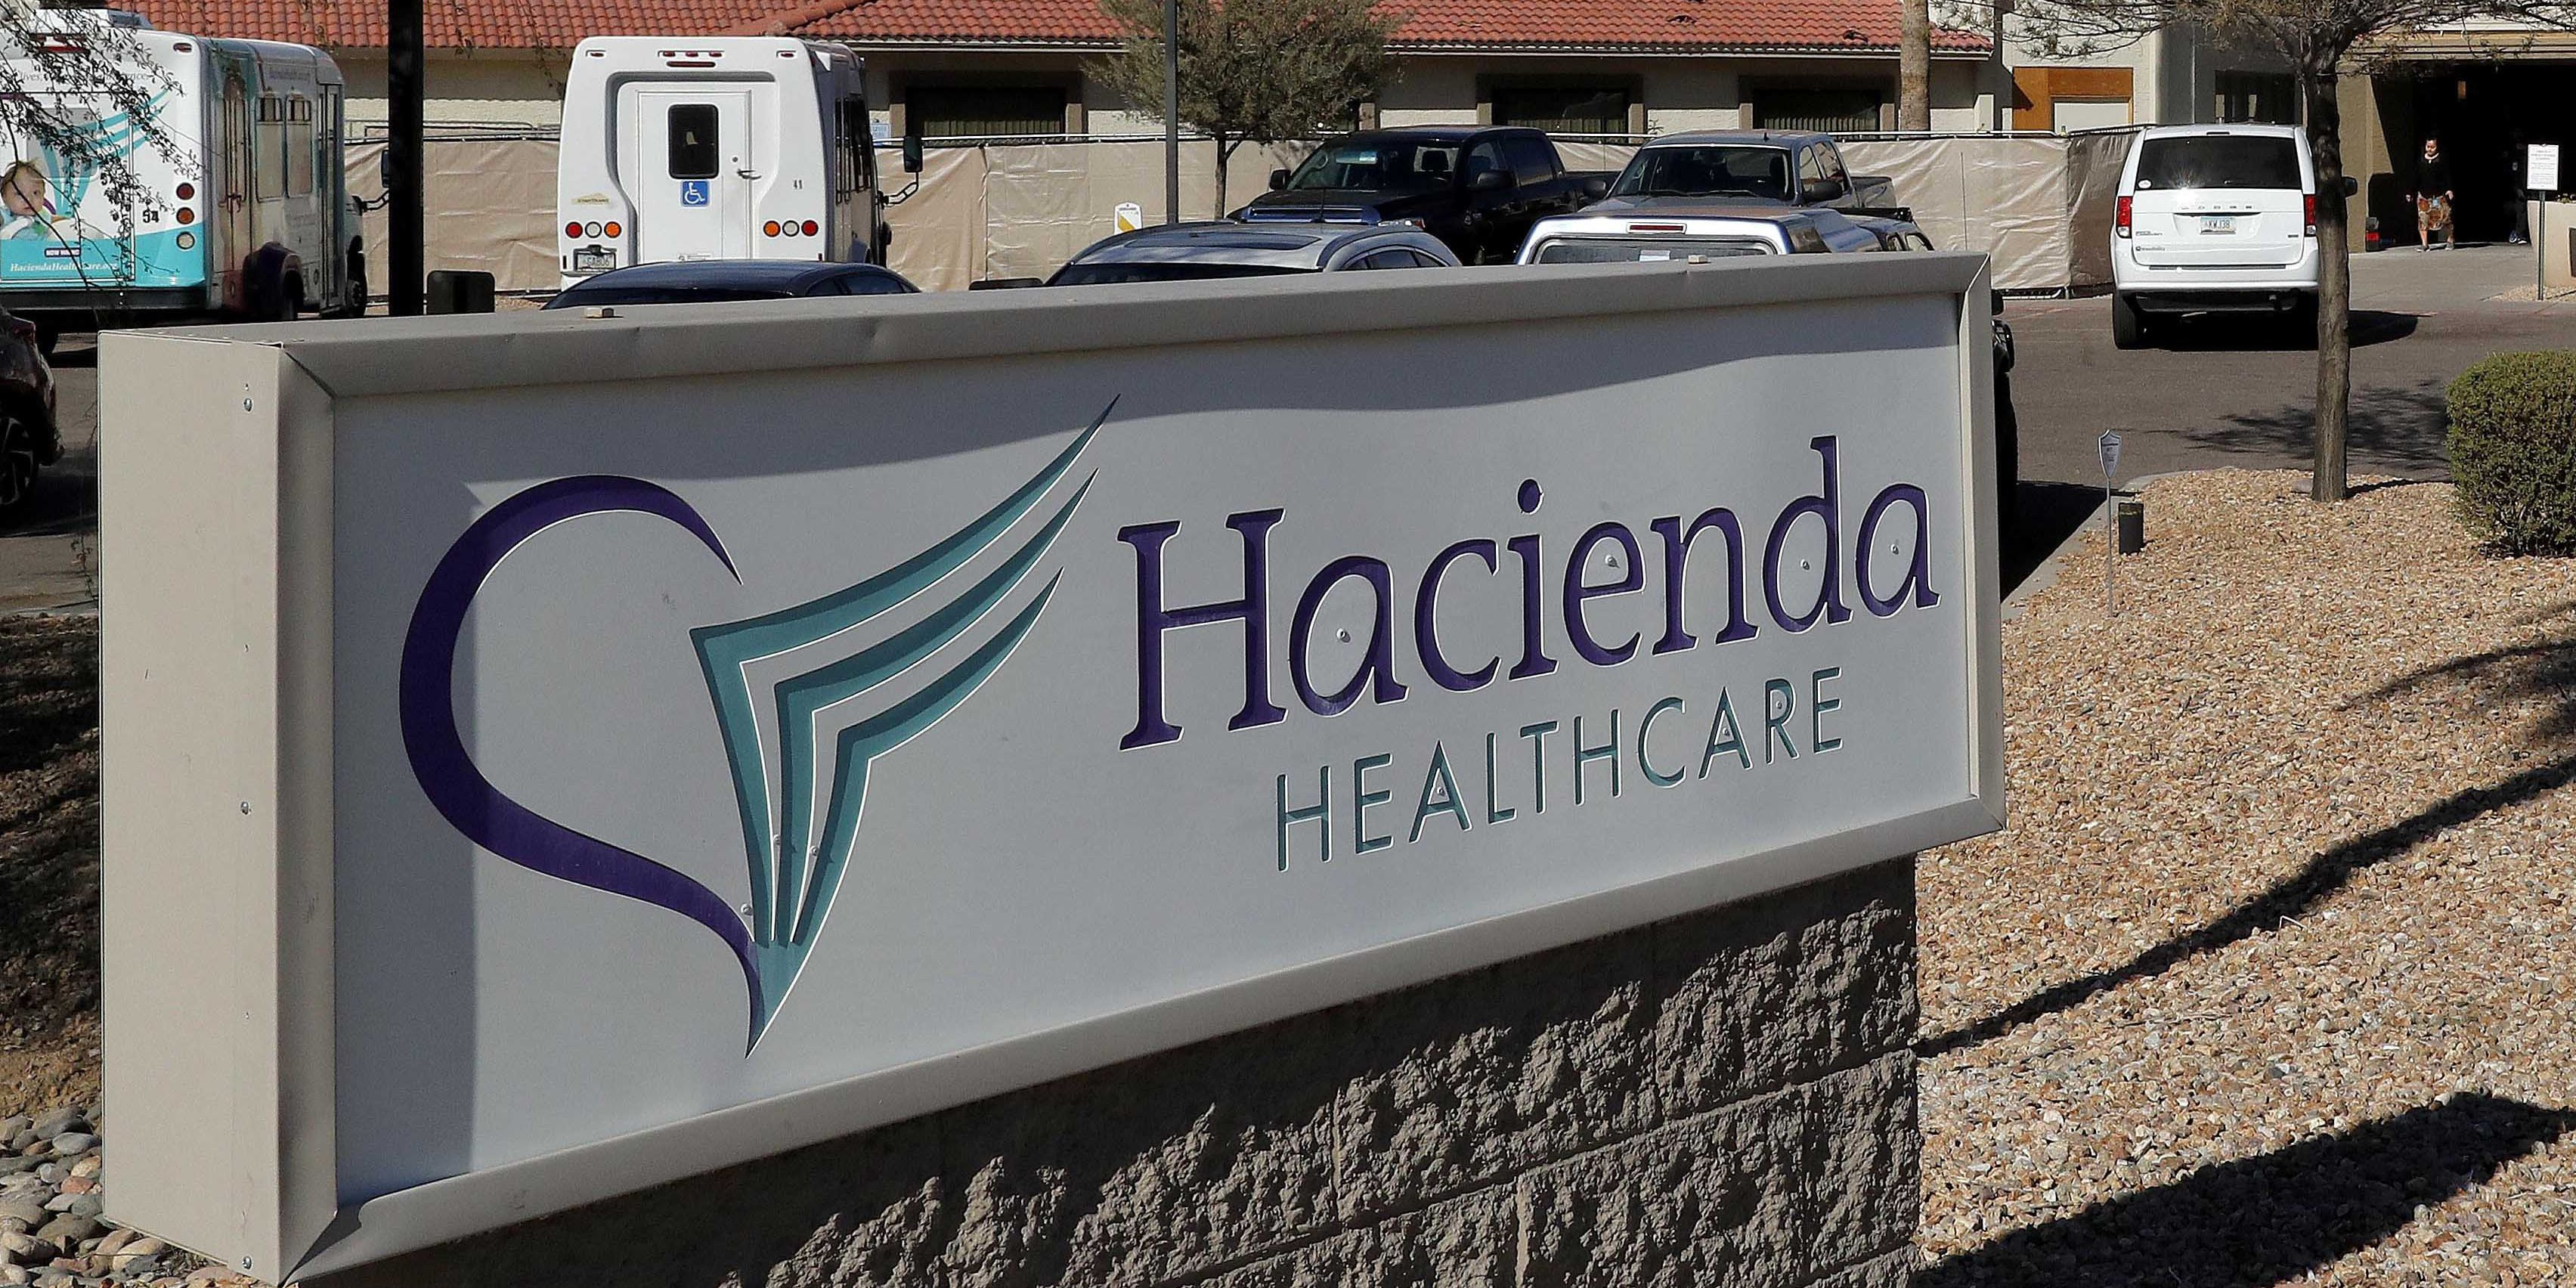 Arizona wants care unit where patient was raped to stay open